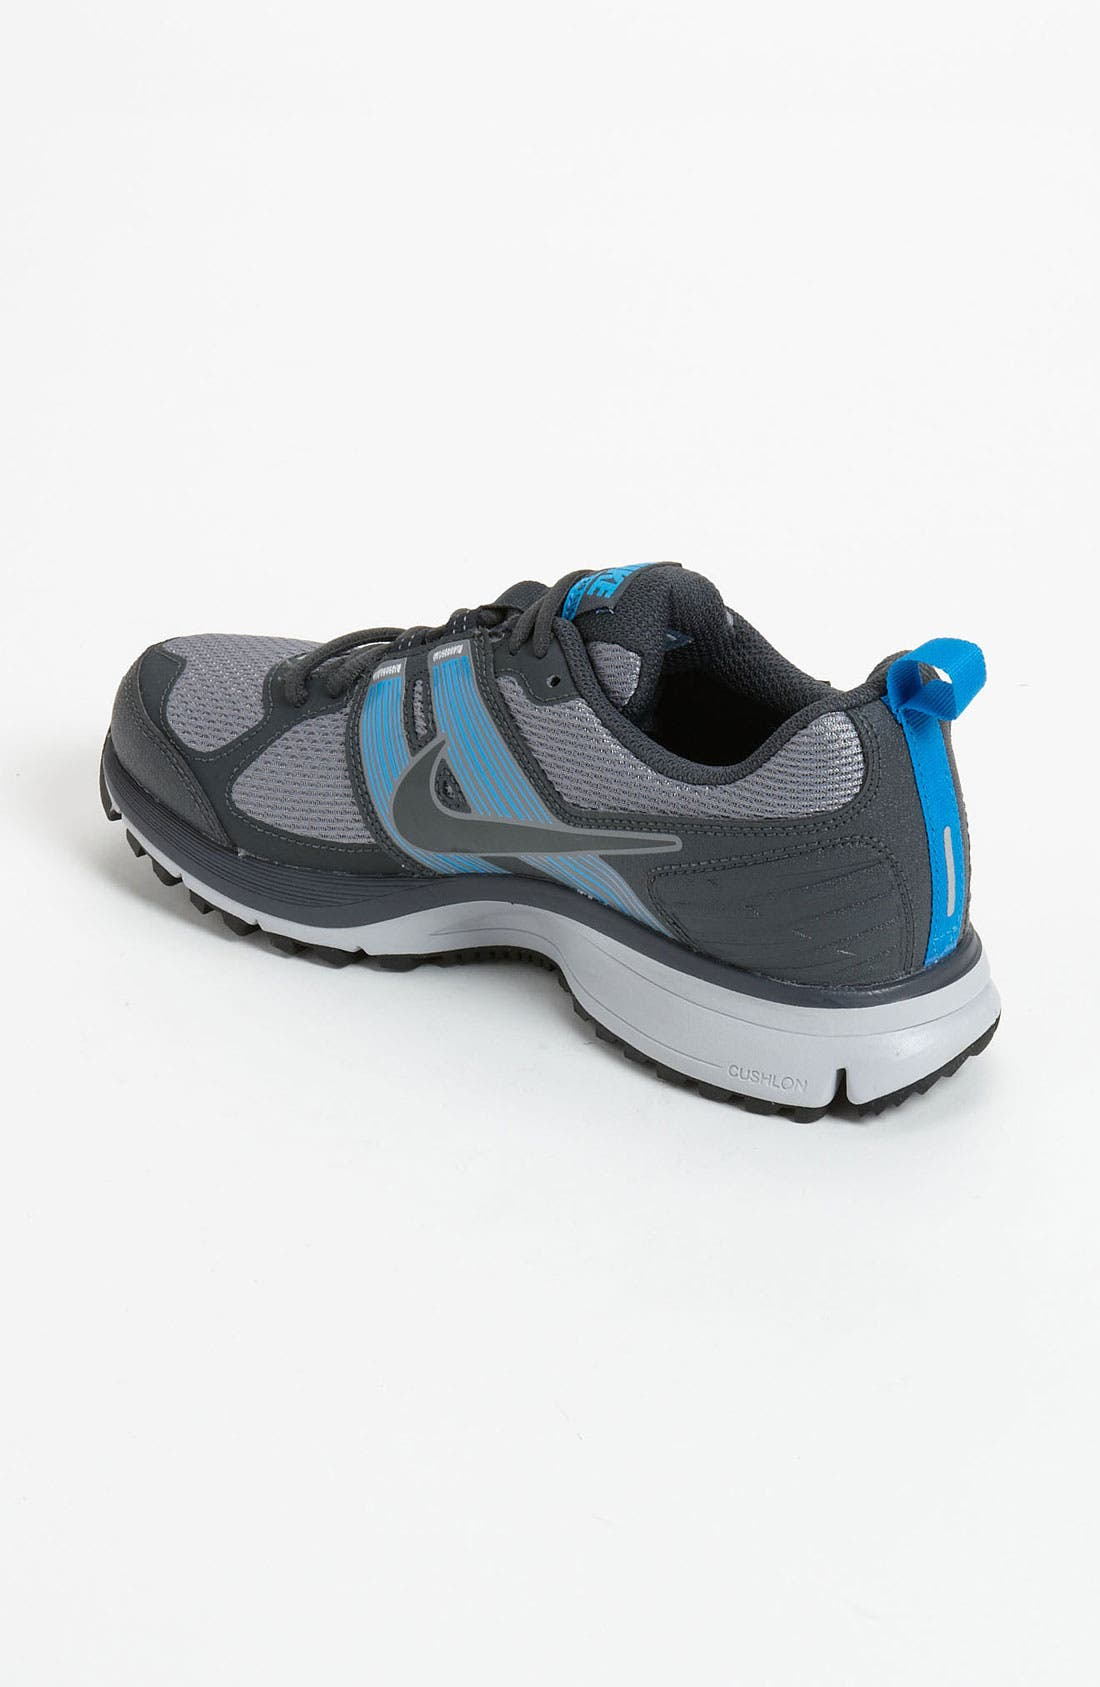 Alternate Image 2  - Nike 'Air Pegasus 29+ GTX' Running Shoe (Women)